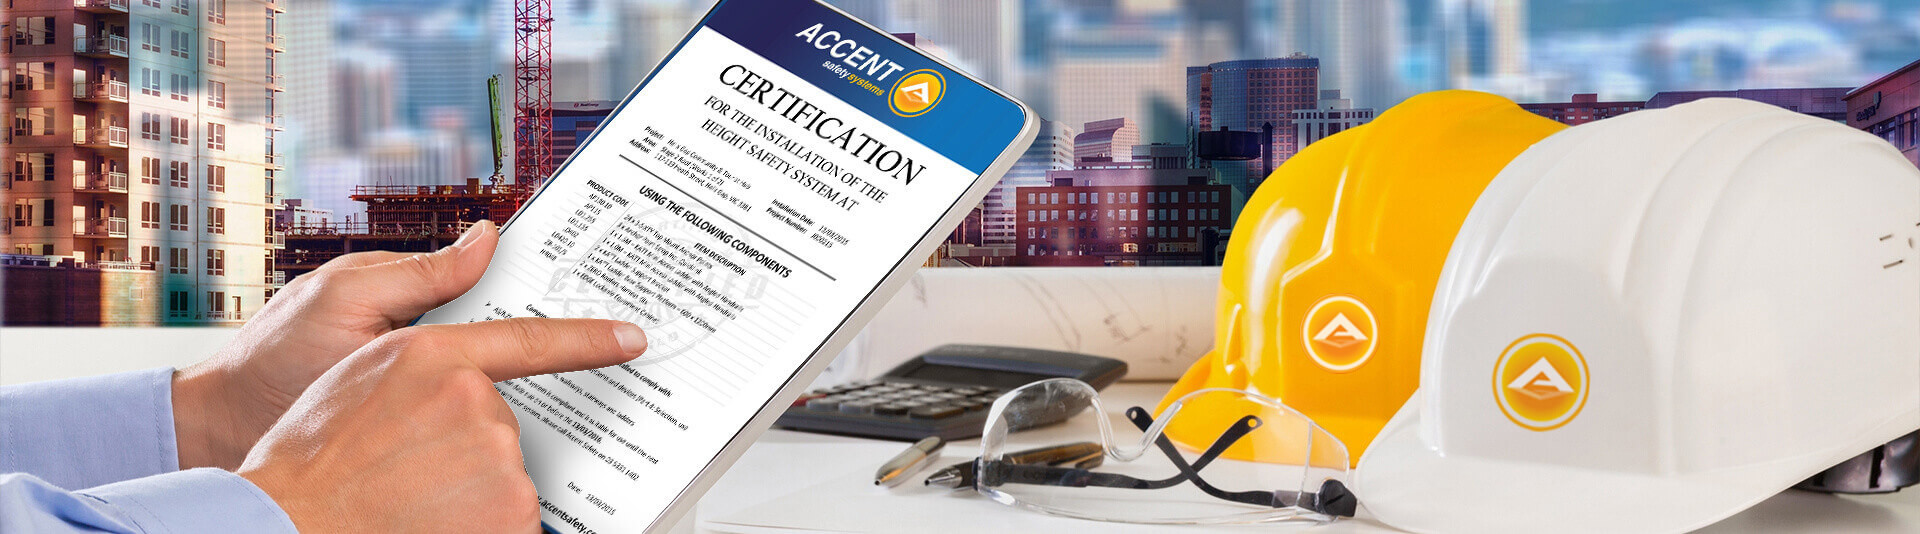 Roof Safety Audits & Re-Certification